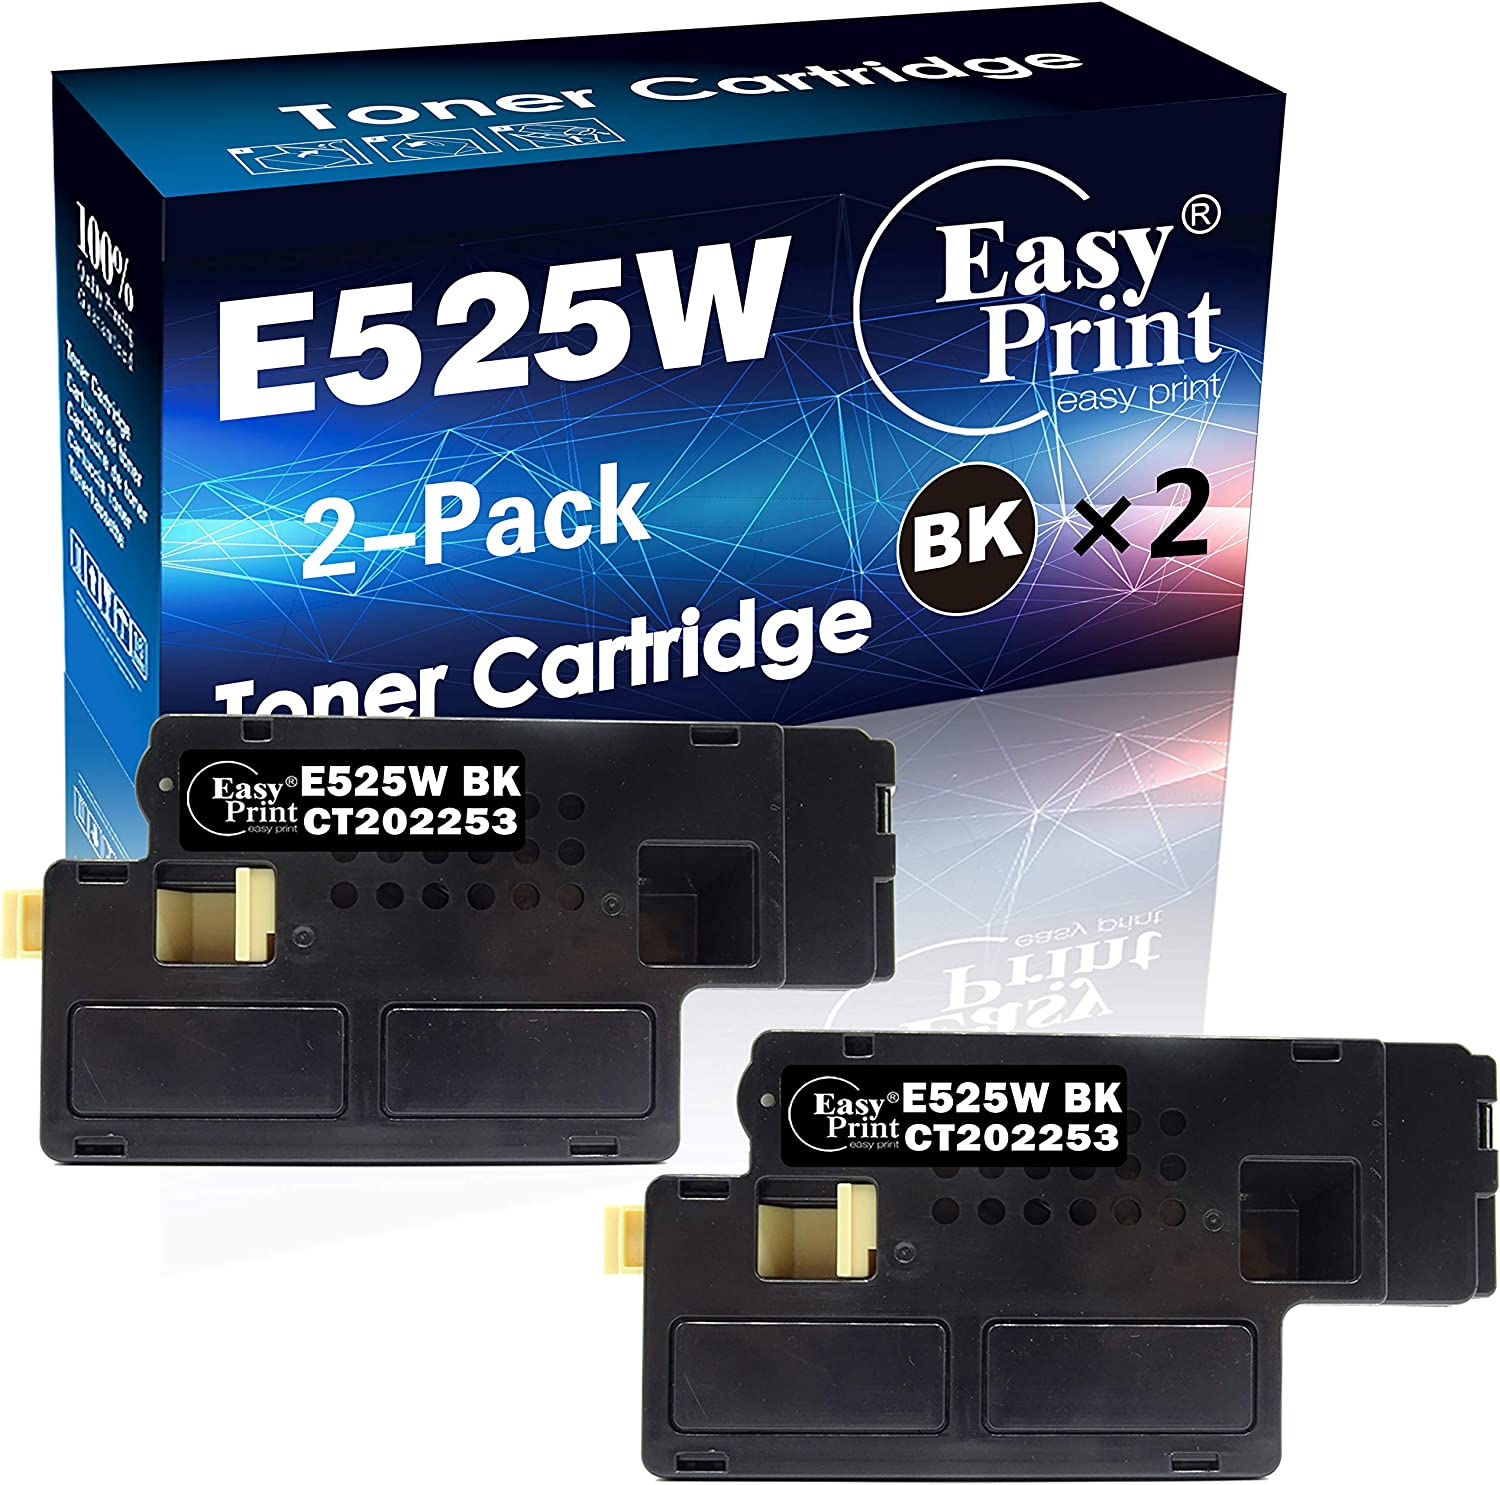 2-Pack of Black Compatible Toner Cartridge Replacement for Dell E525W E525 for Dell E525W Wireless Color Laser Printer for 593-BBJX 593-BBJU 593-BBJV 593-BBJW, Sold by EasyPrint